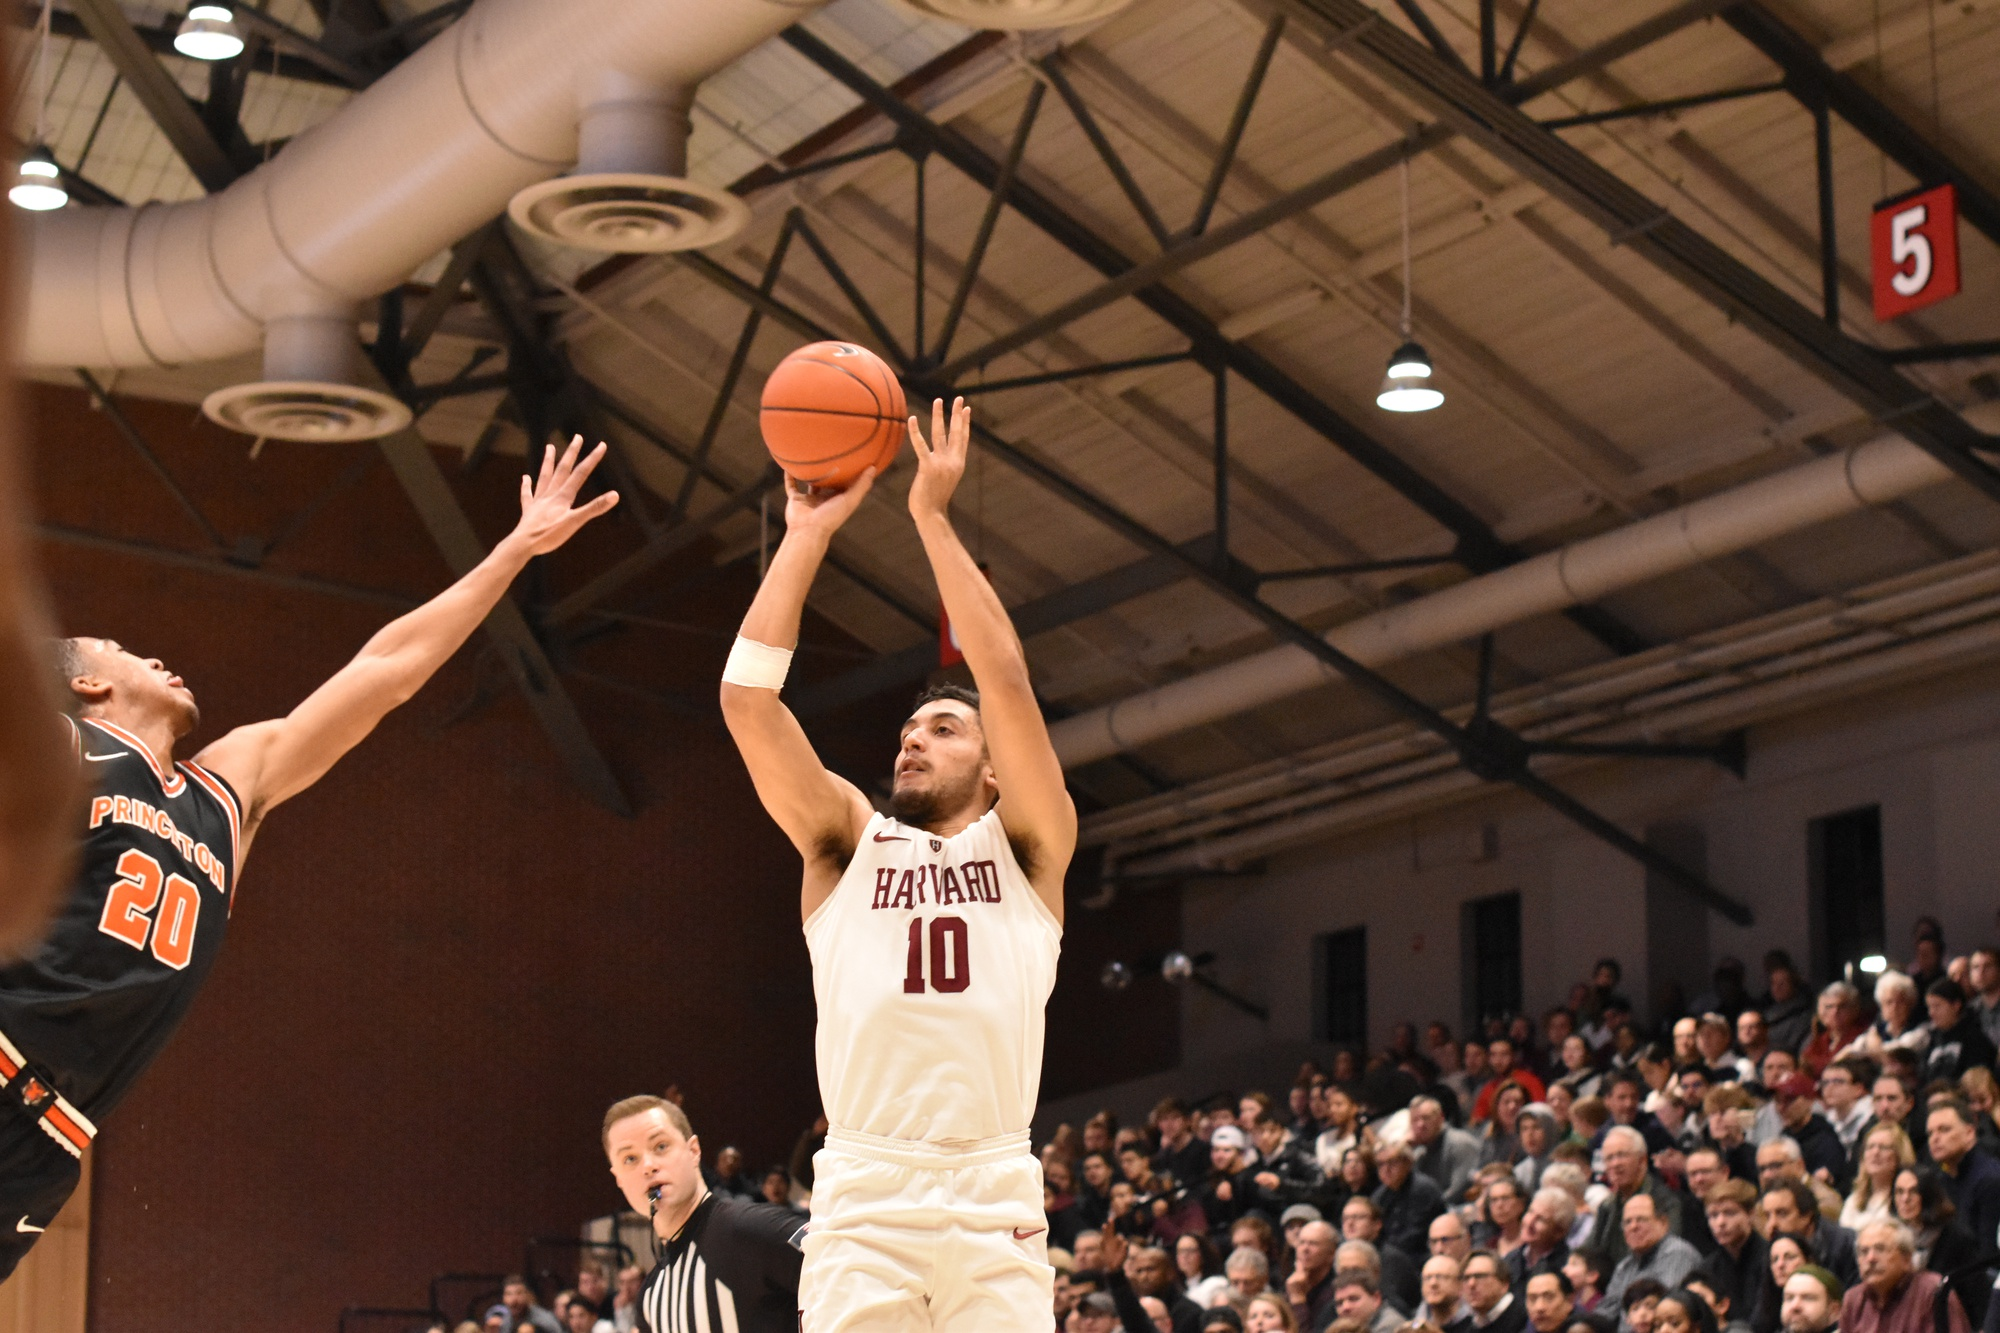 Noah Kirkwood rises for a shot against Princeton. The sophomore guard has become Harvard's go-to scorer in the absence of Bryce Aiken, averaging over 15 points per game in the last nine.